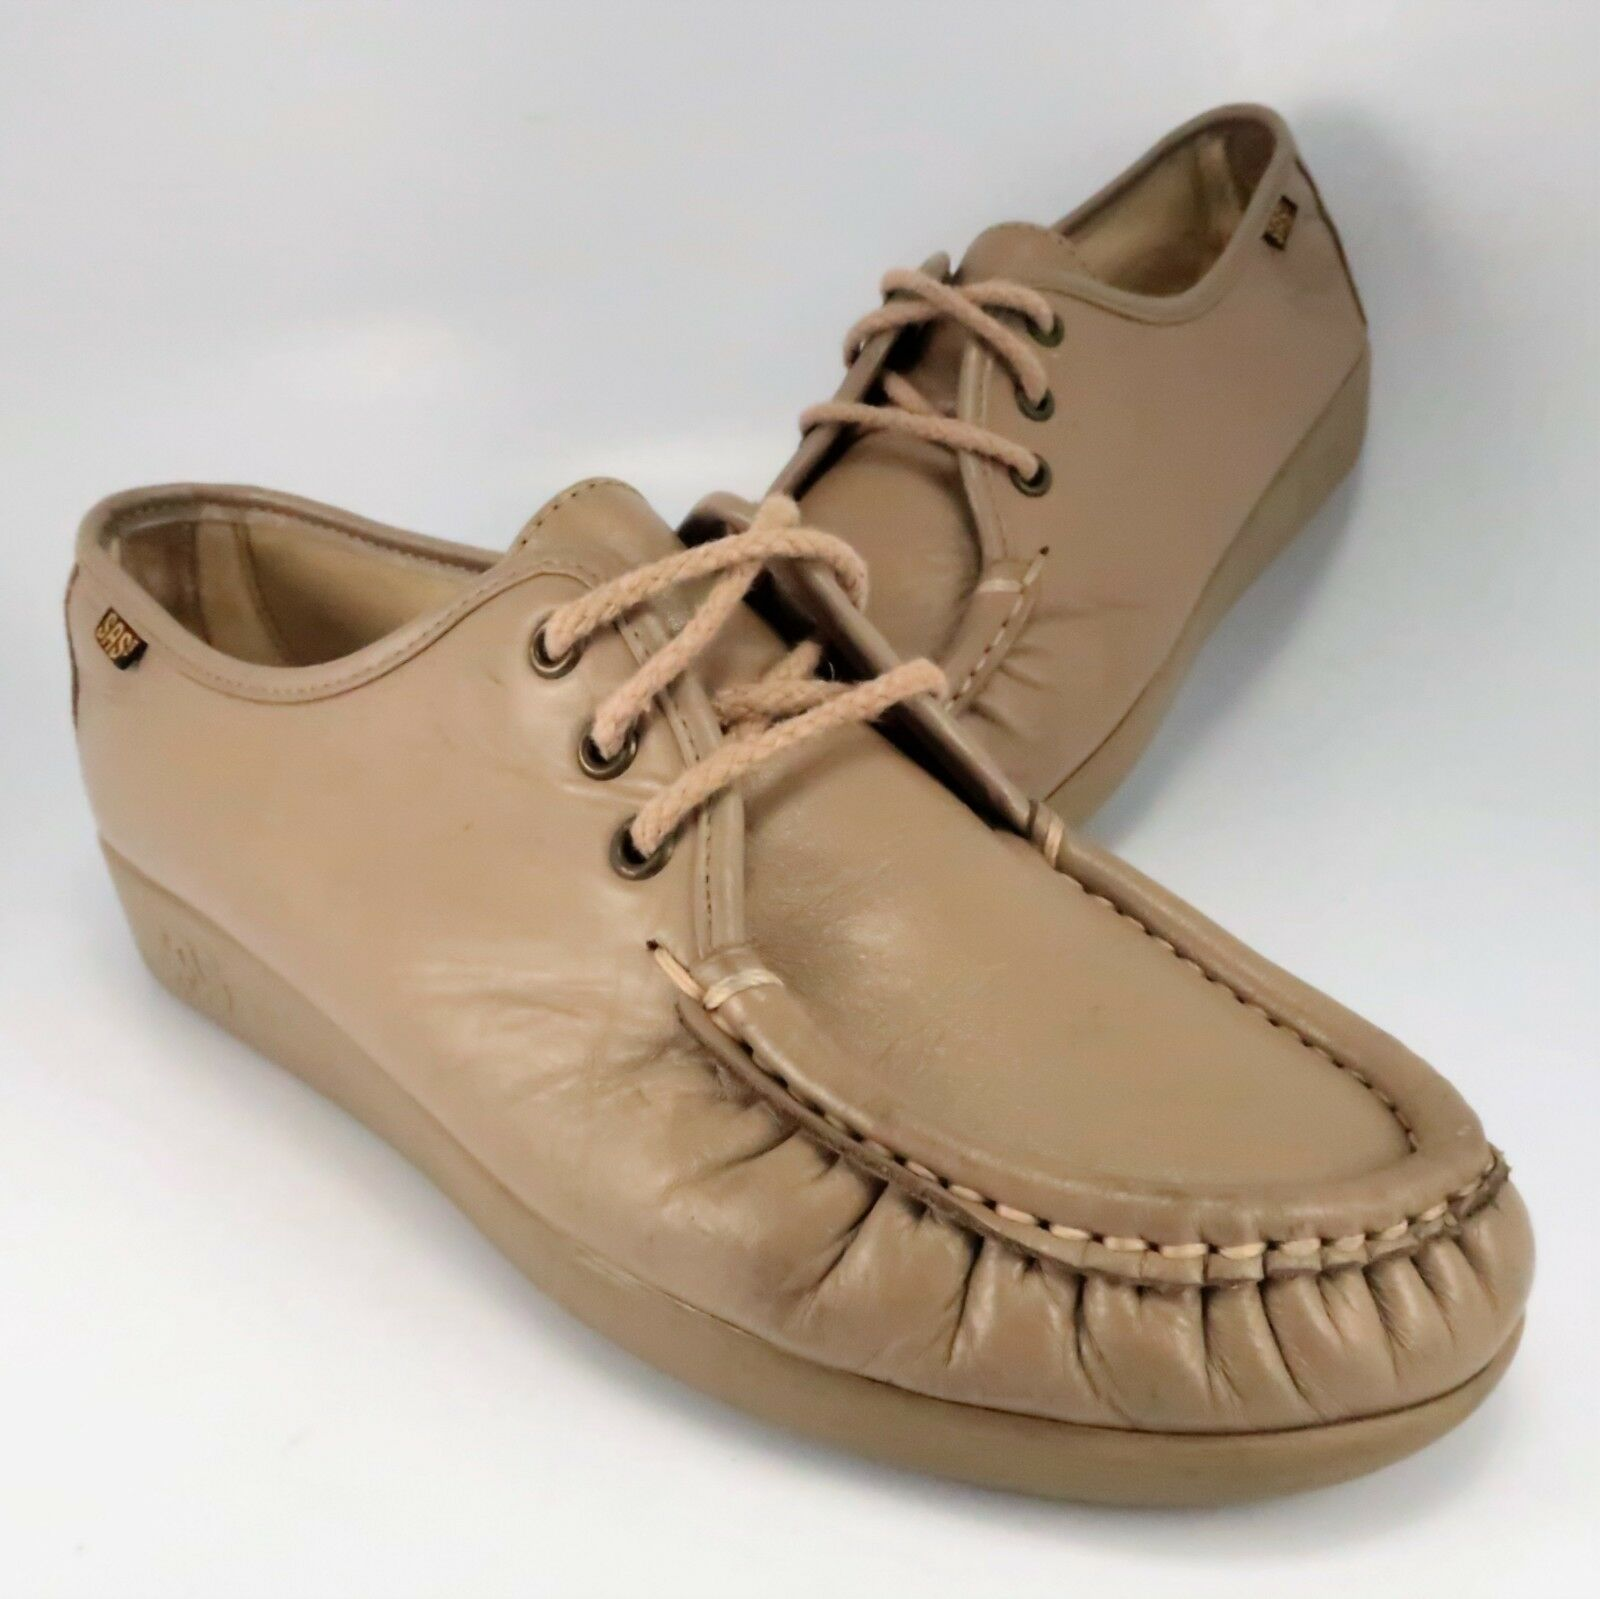 SAS Siesta shoes Womens Size 8.5M Tan Leather Lace-Up Oxfords Hand Sewn in USA